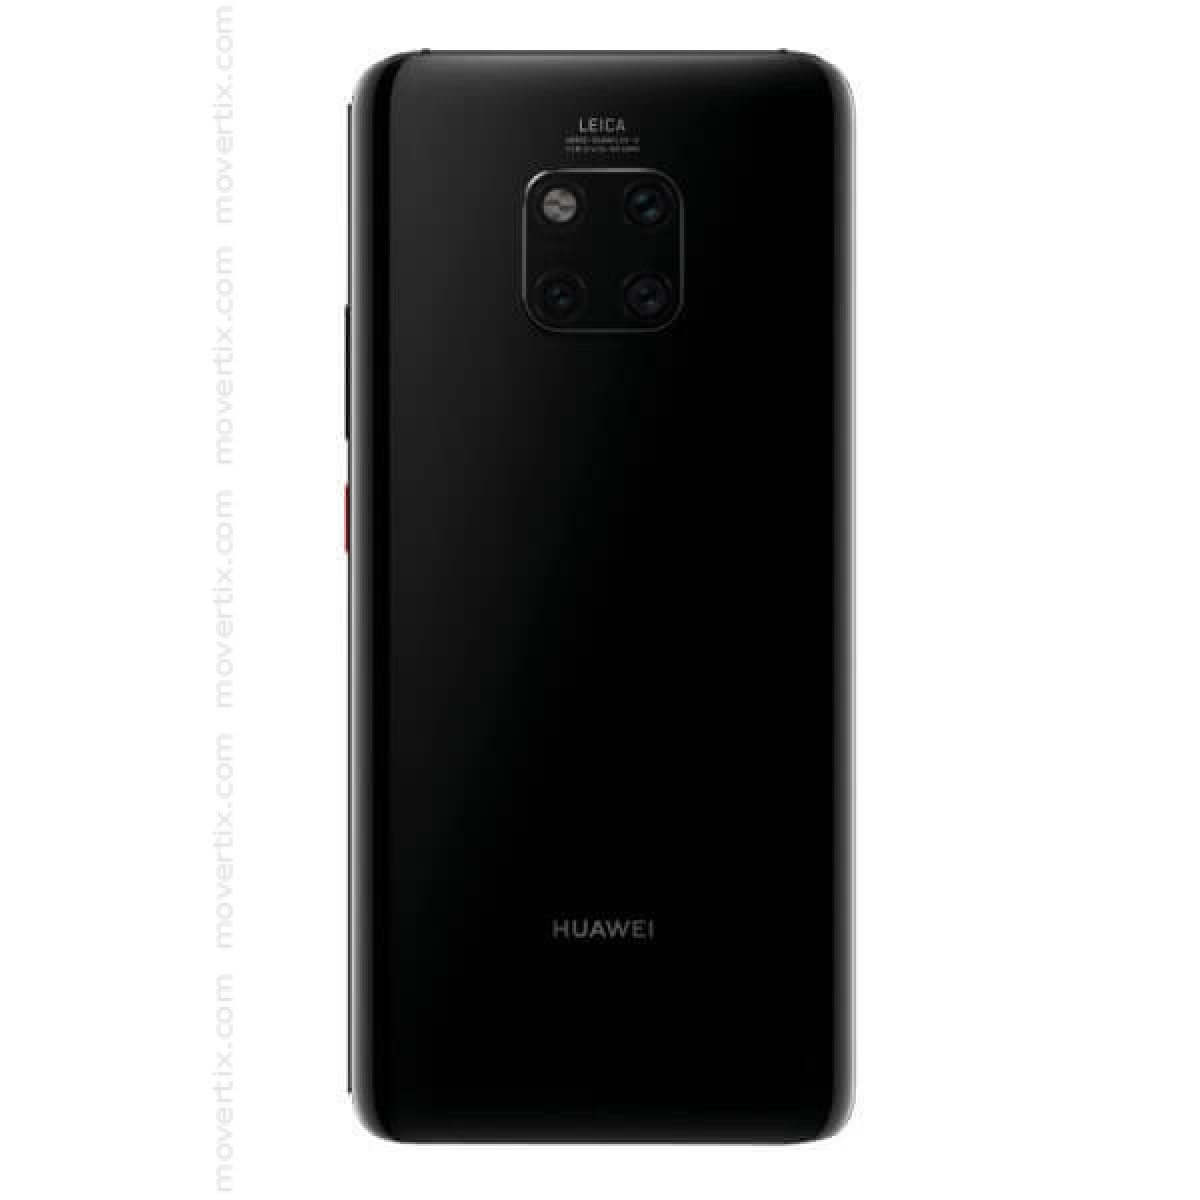 29c96ba5ac3450 The Huawei Mate 20 Pro in black color is a Dual SIM smartphone with triple  Leica camera, exceptional performance, 6GB of RAM and 128GB of storage, ...